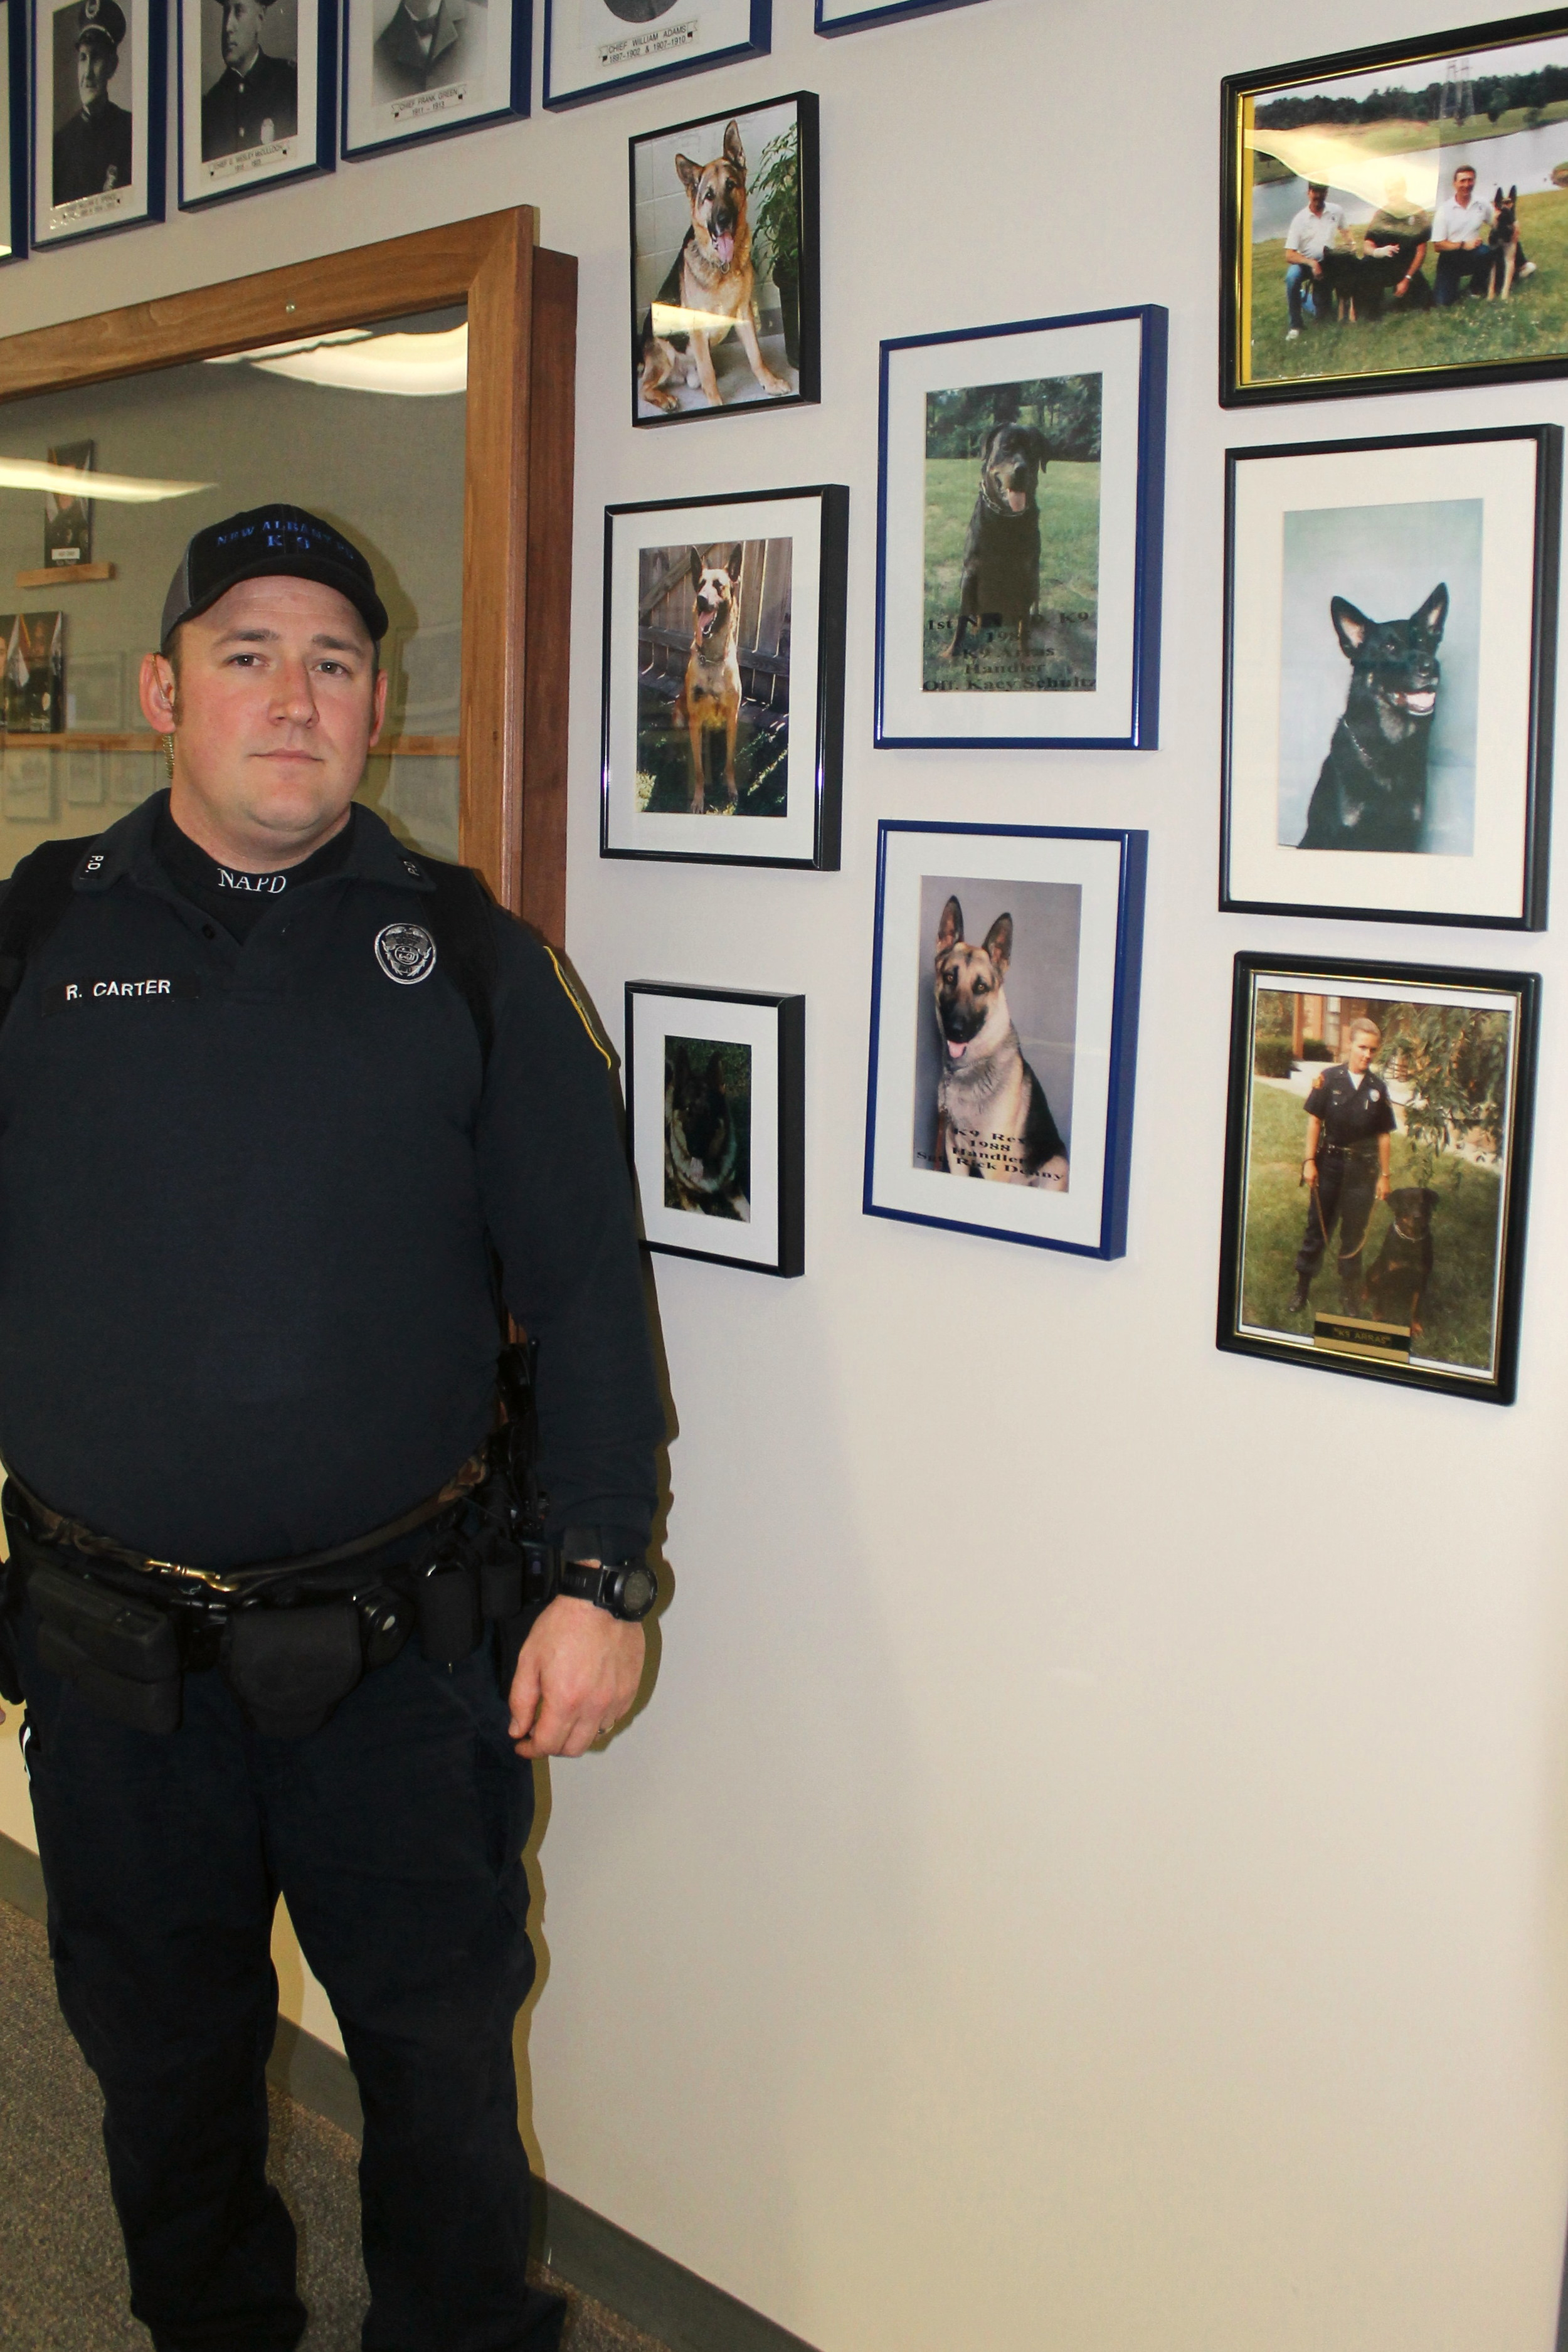 Patrolman Robert Carter, Warro's handler, is pictured with the former K-9s of the NAPD.